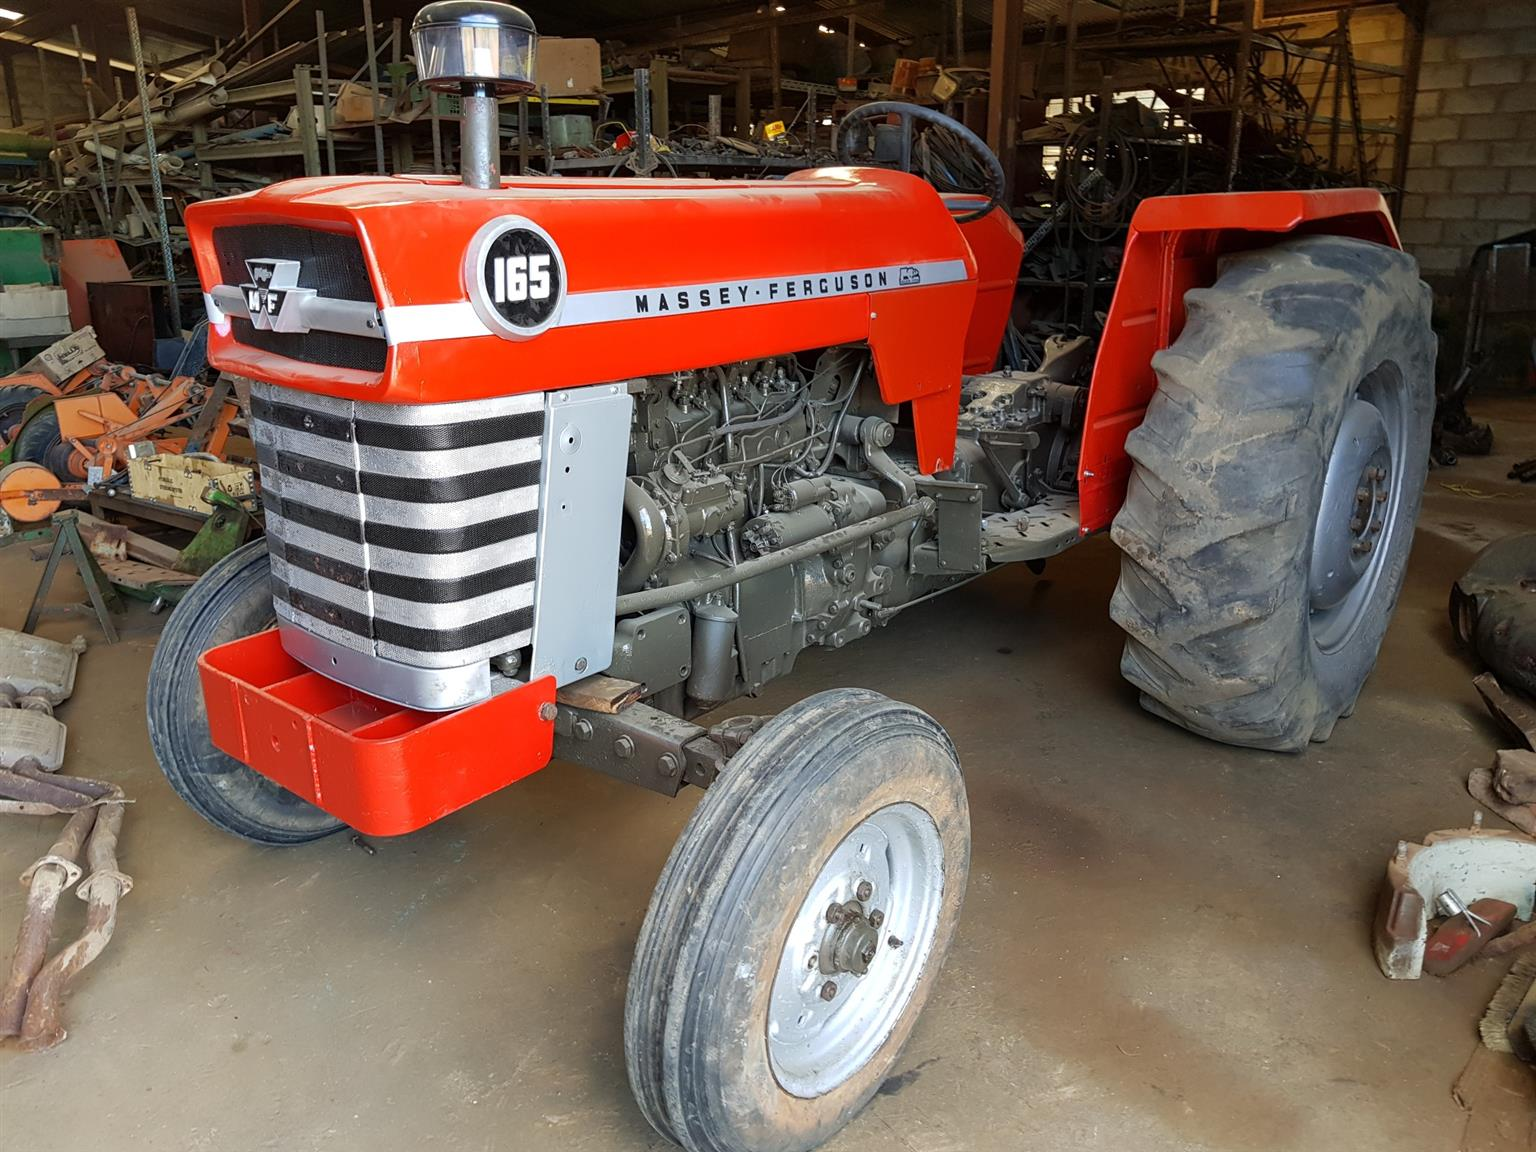 Tractors  available. Blue,  Green,  Orange,  and  Red.  Popular  makes and models. From R35,000